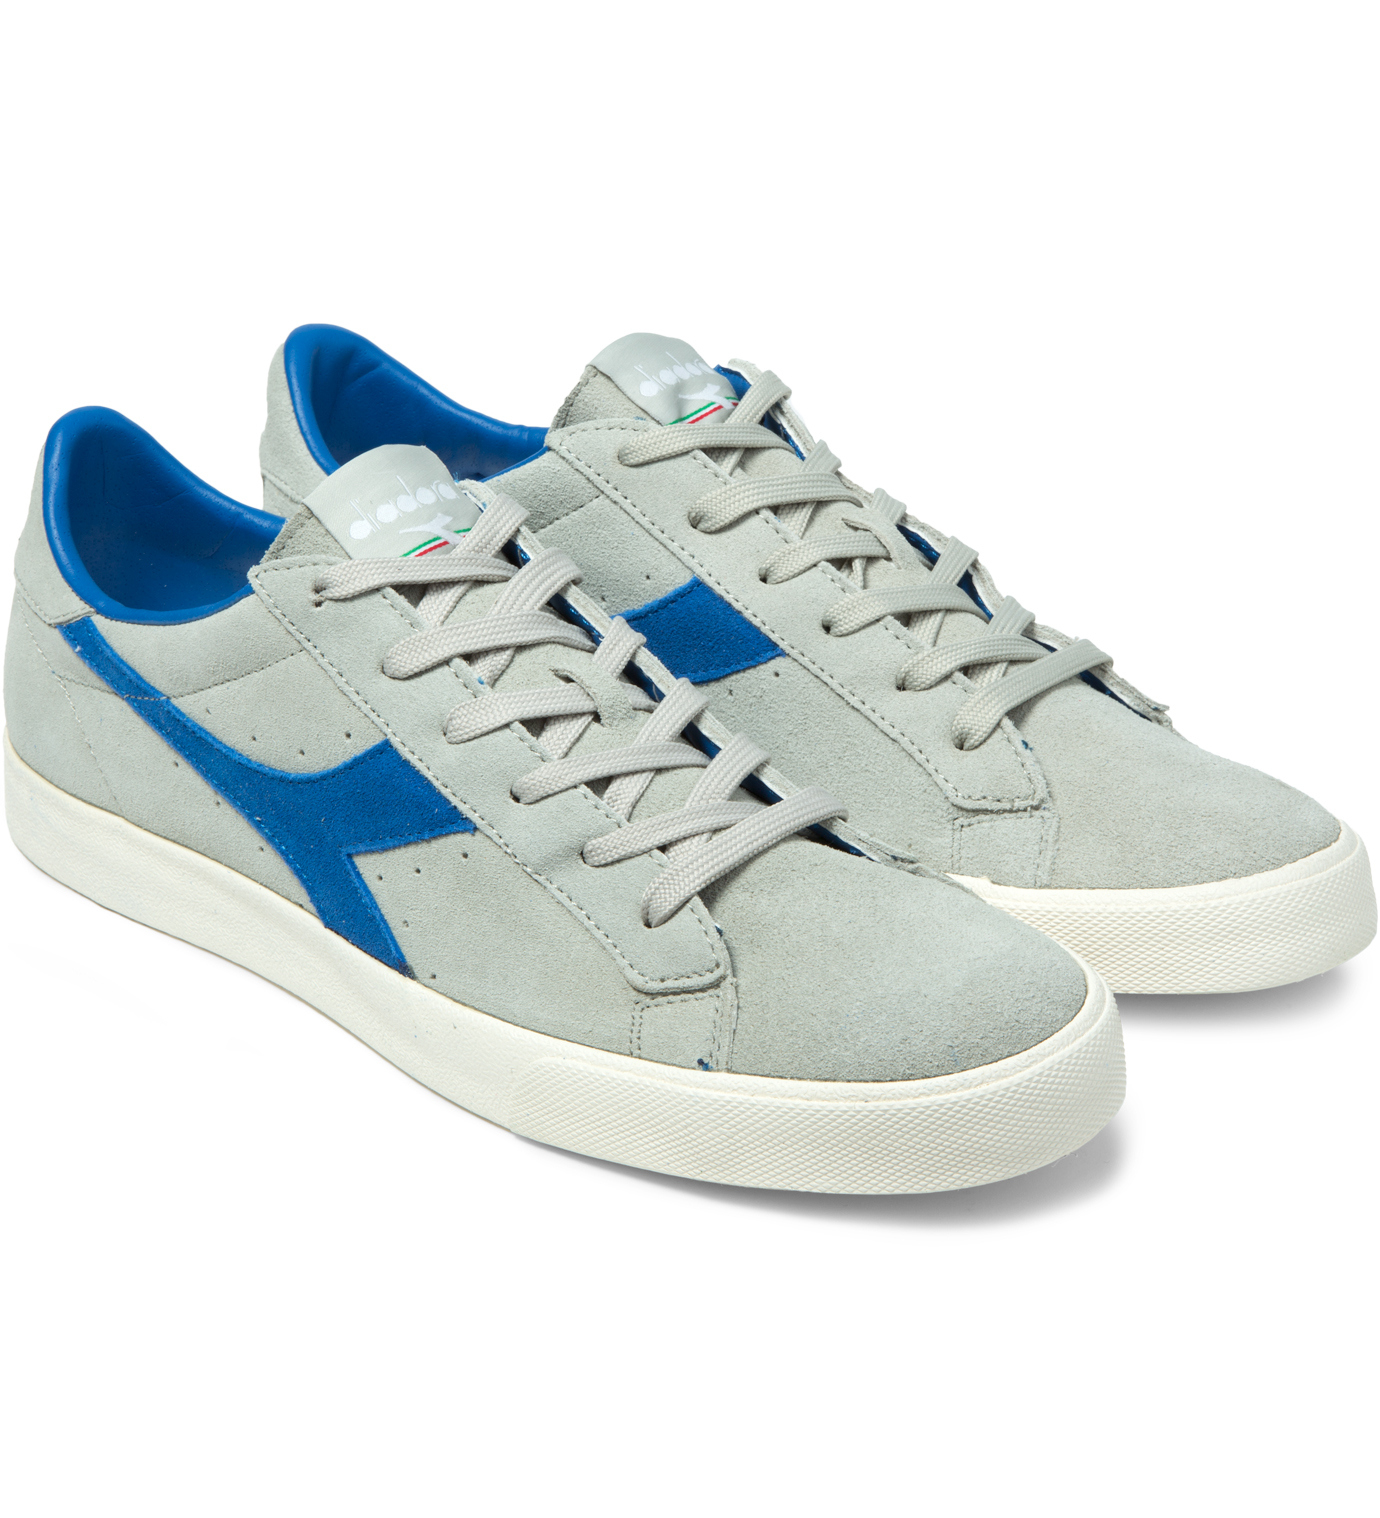 diadora putty blue bell tennis 270 low shoes in blue for